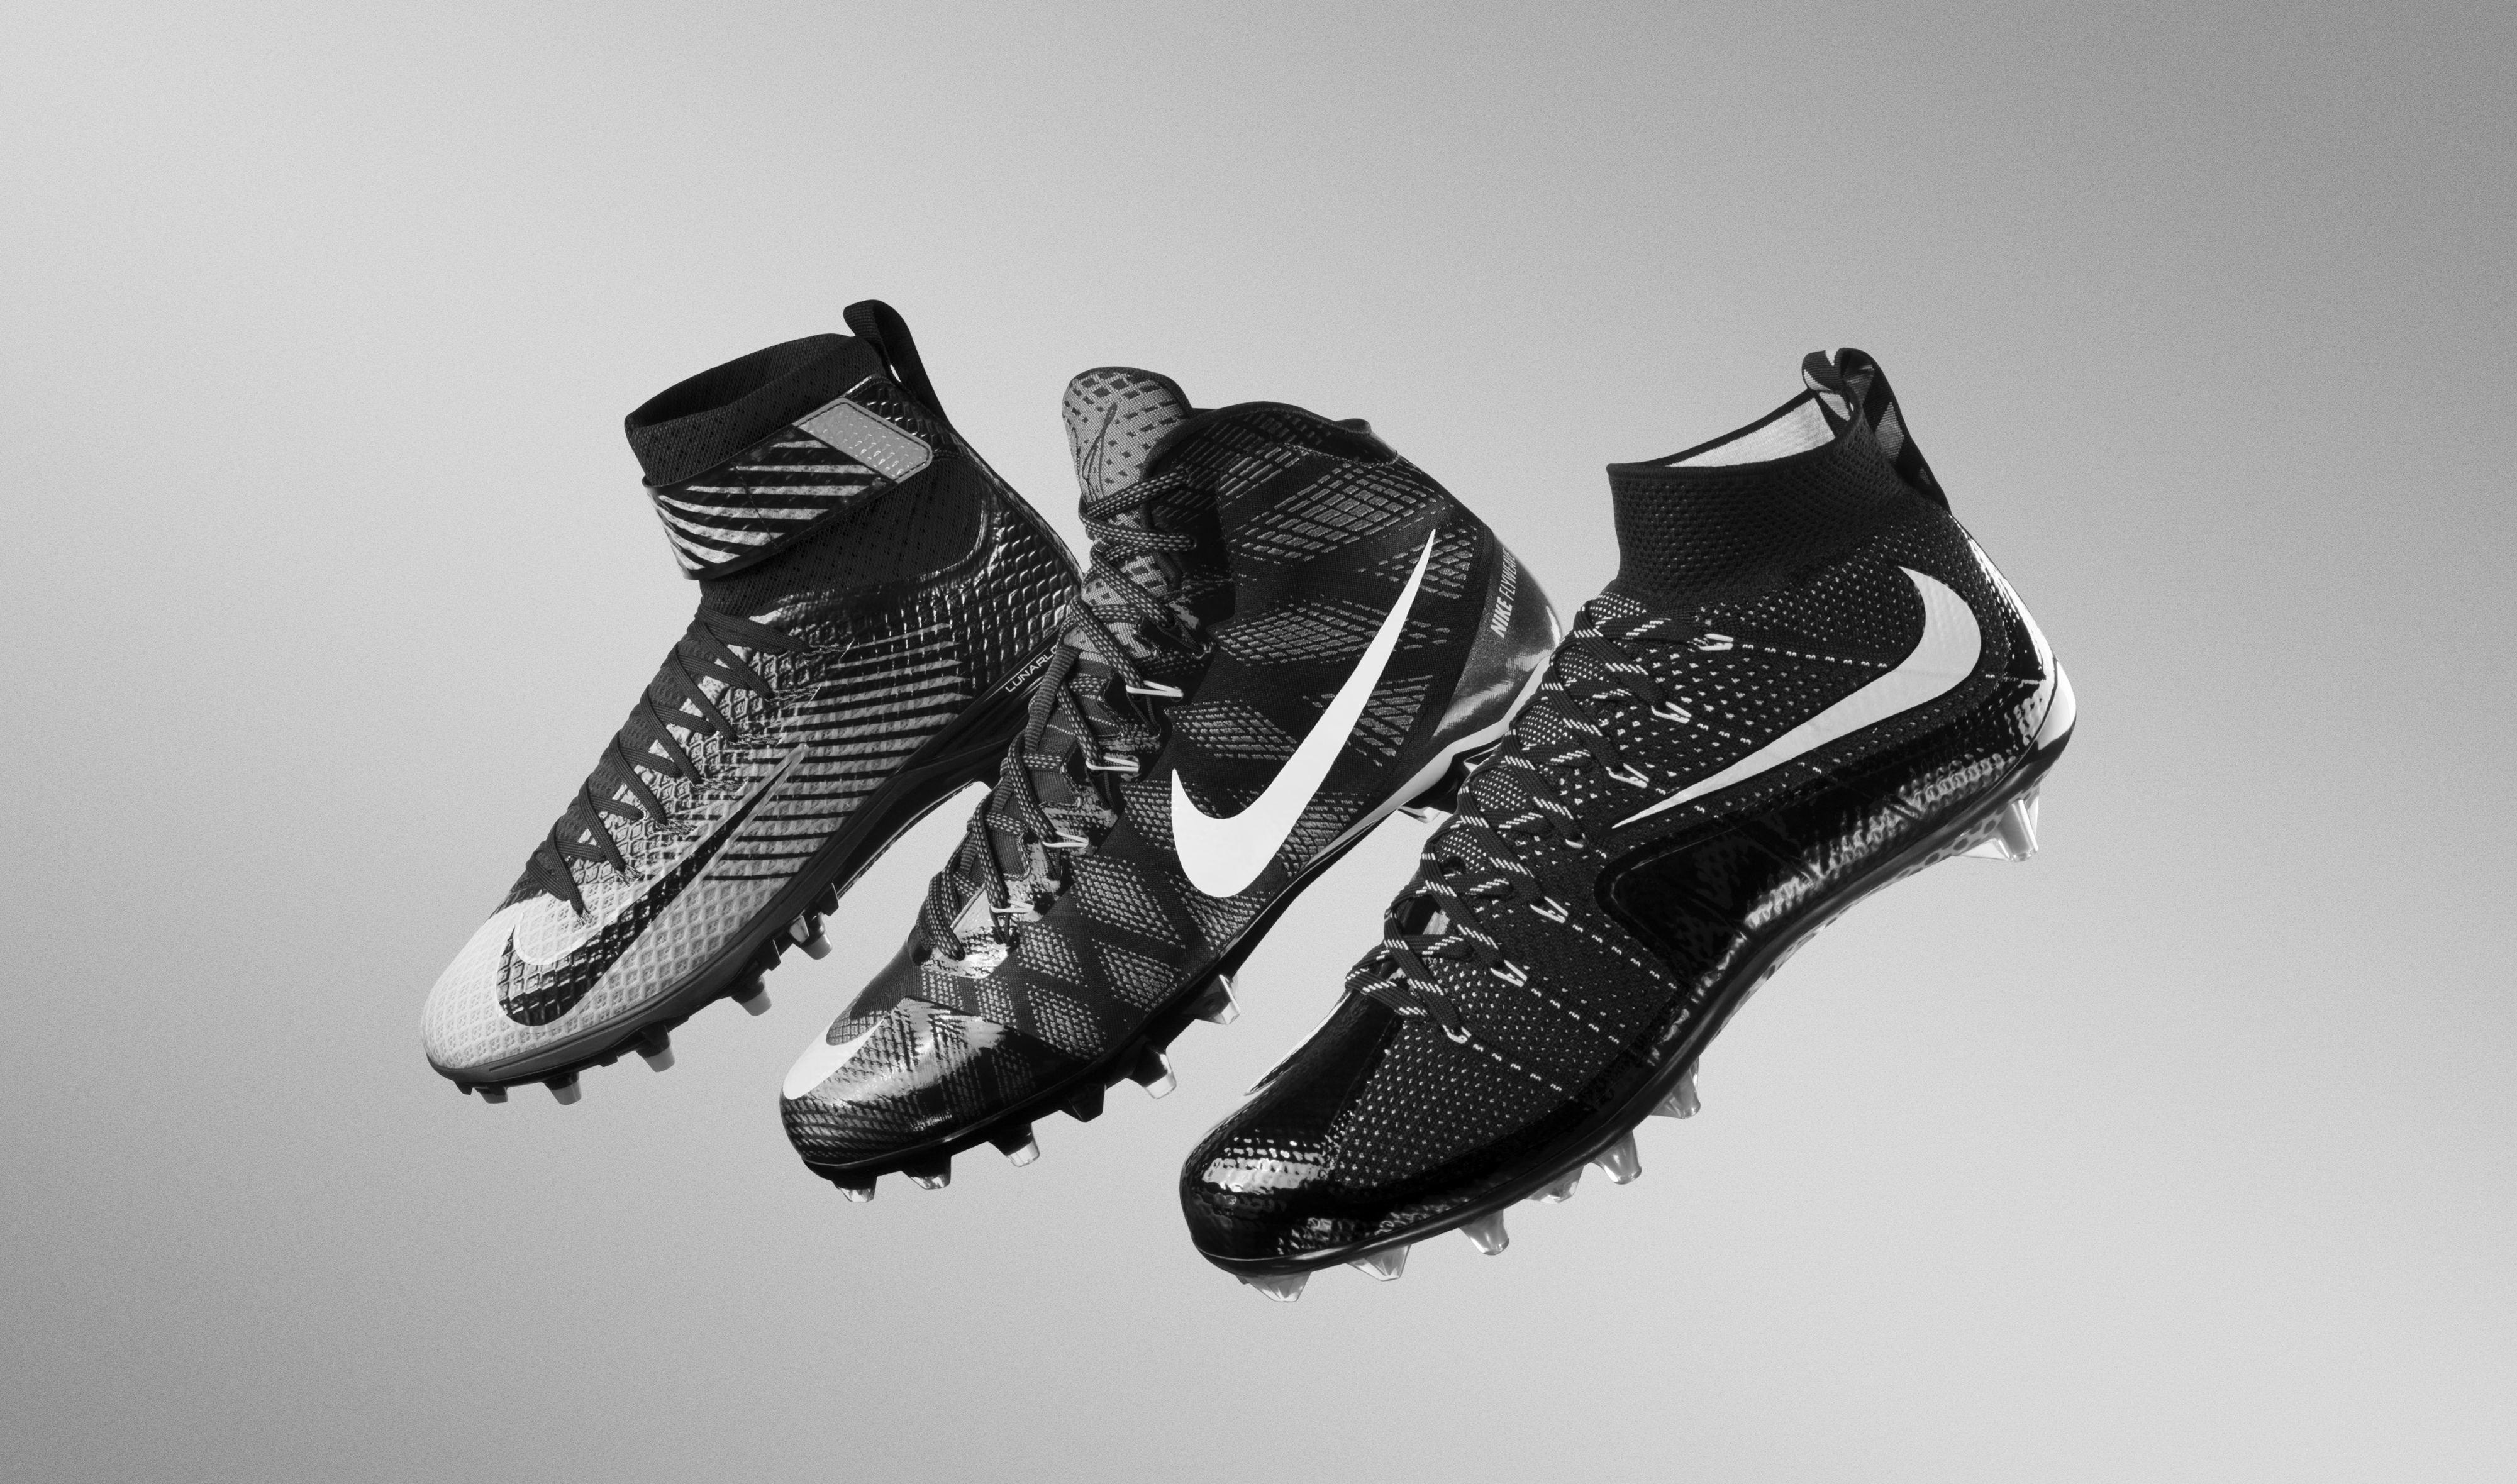 new nike cleats football